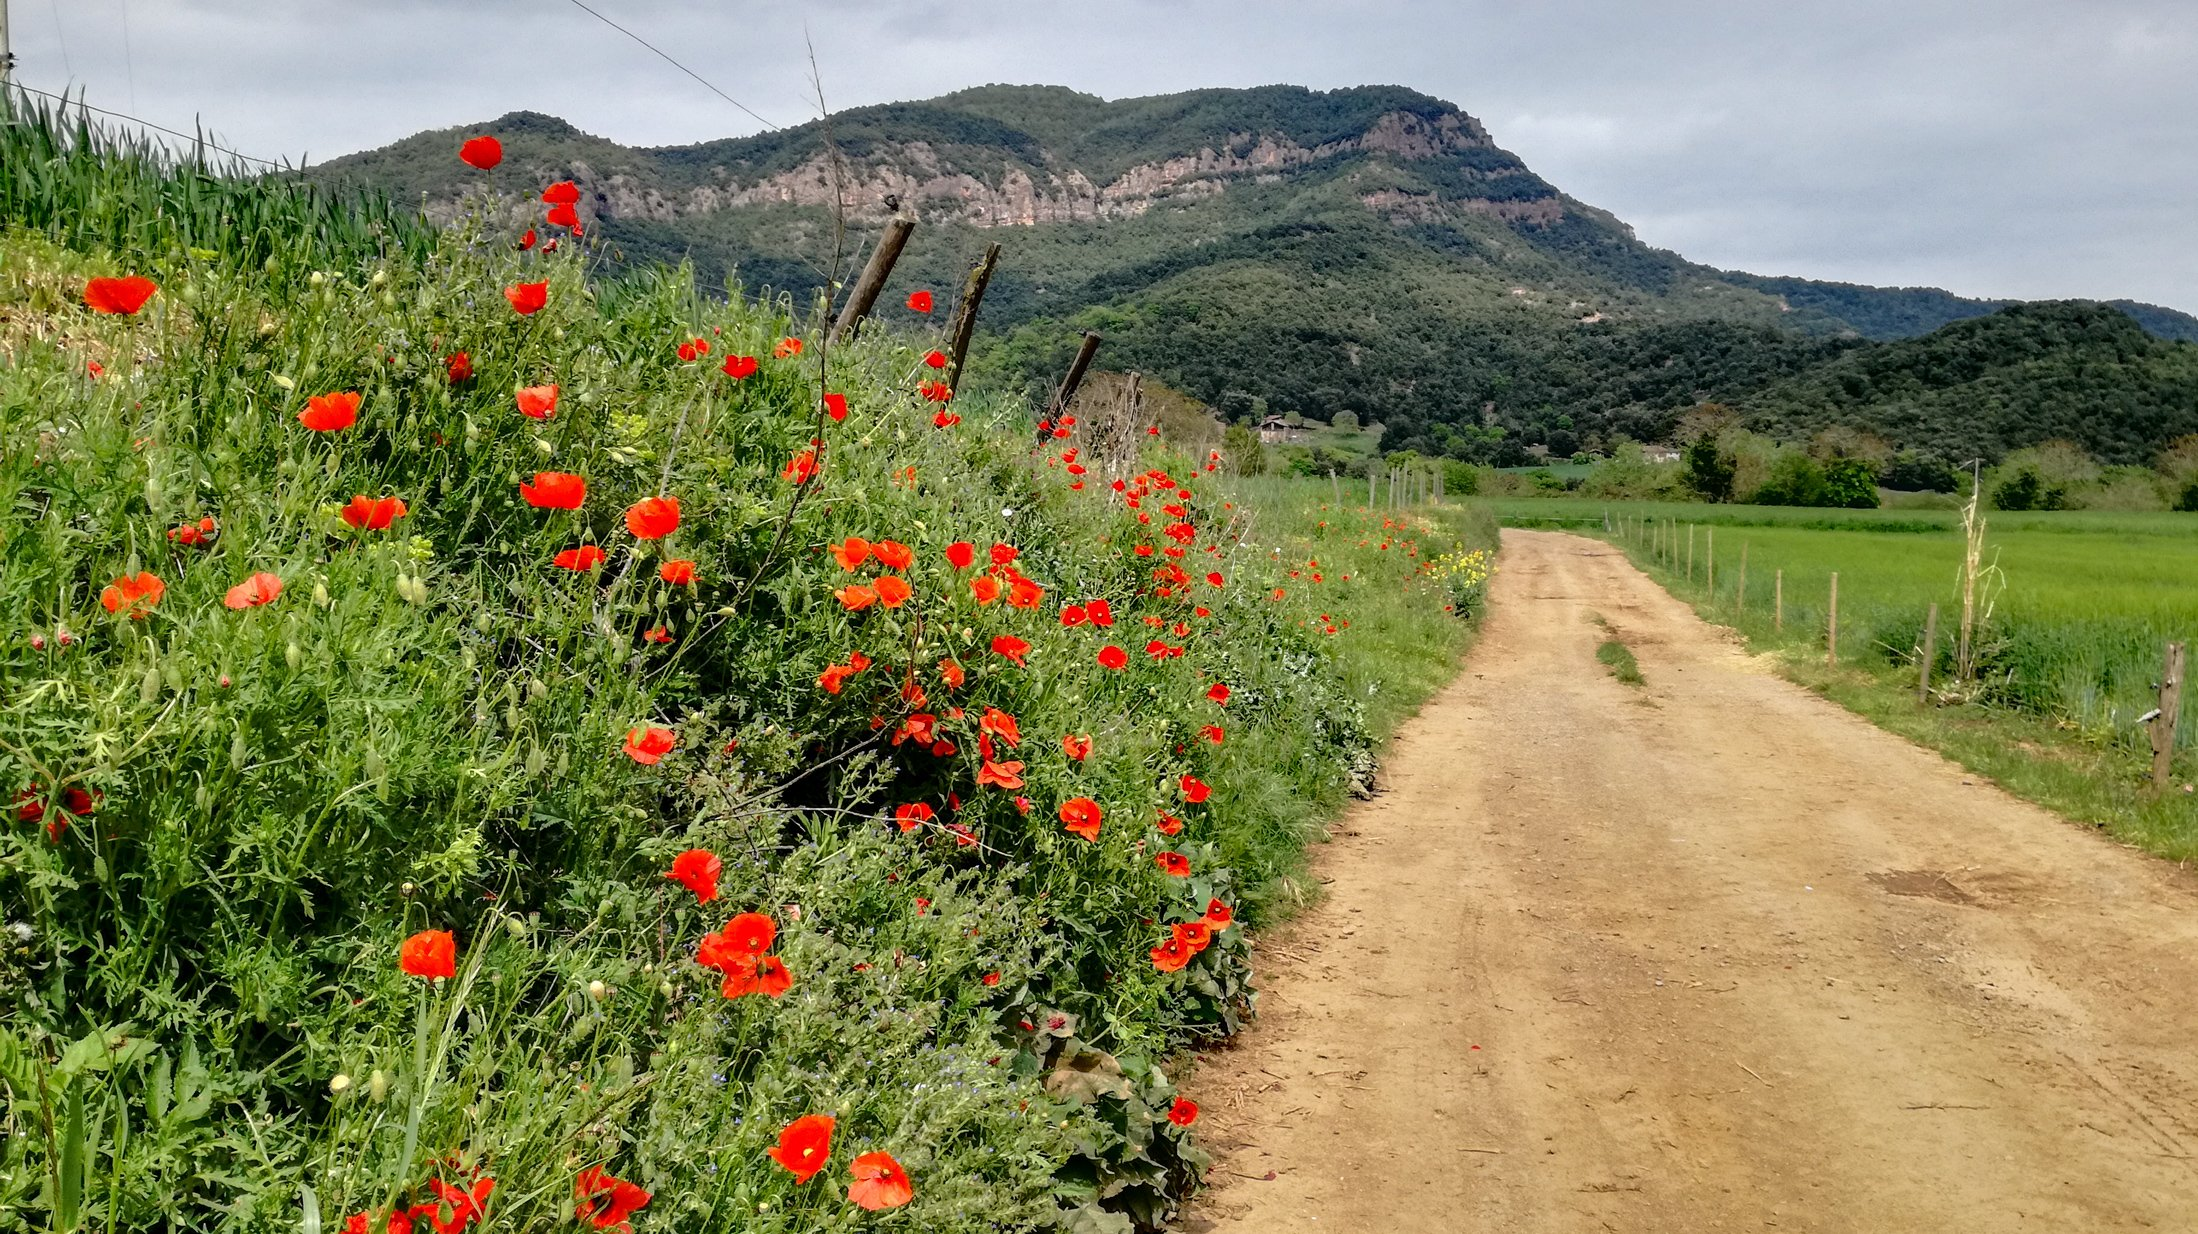 Garrotxa Hike trail, wheat fields and poppies on path to Coll de Boixeda hill in the background